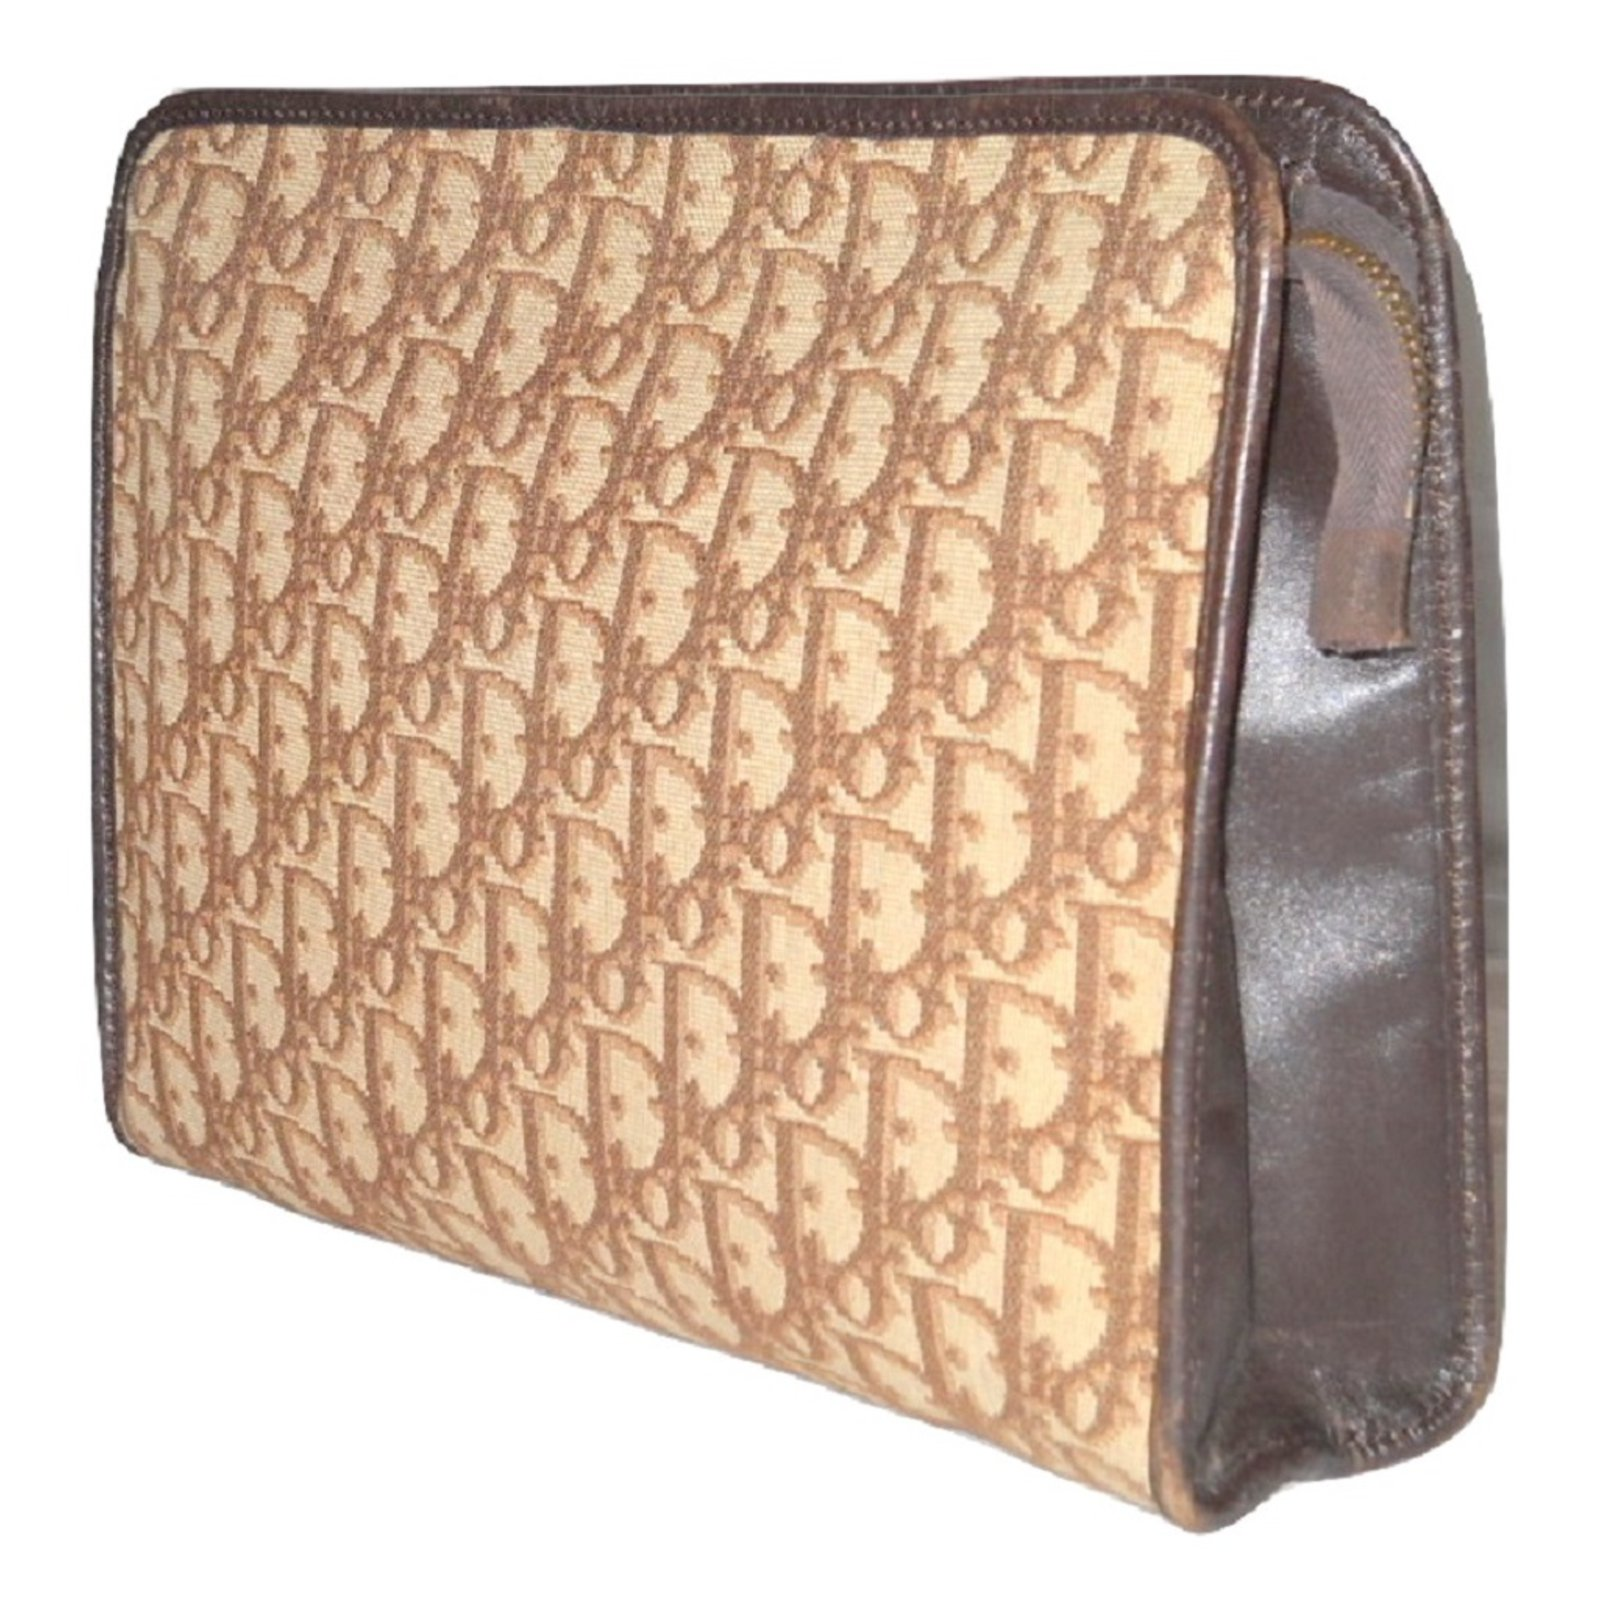 55ed0339c Christian Dior Vintage toiletry bag Wallets Small accessories Leather,Cloth  Brown,Cream ref.79179 - Joli Closet